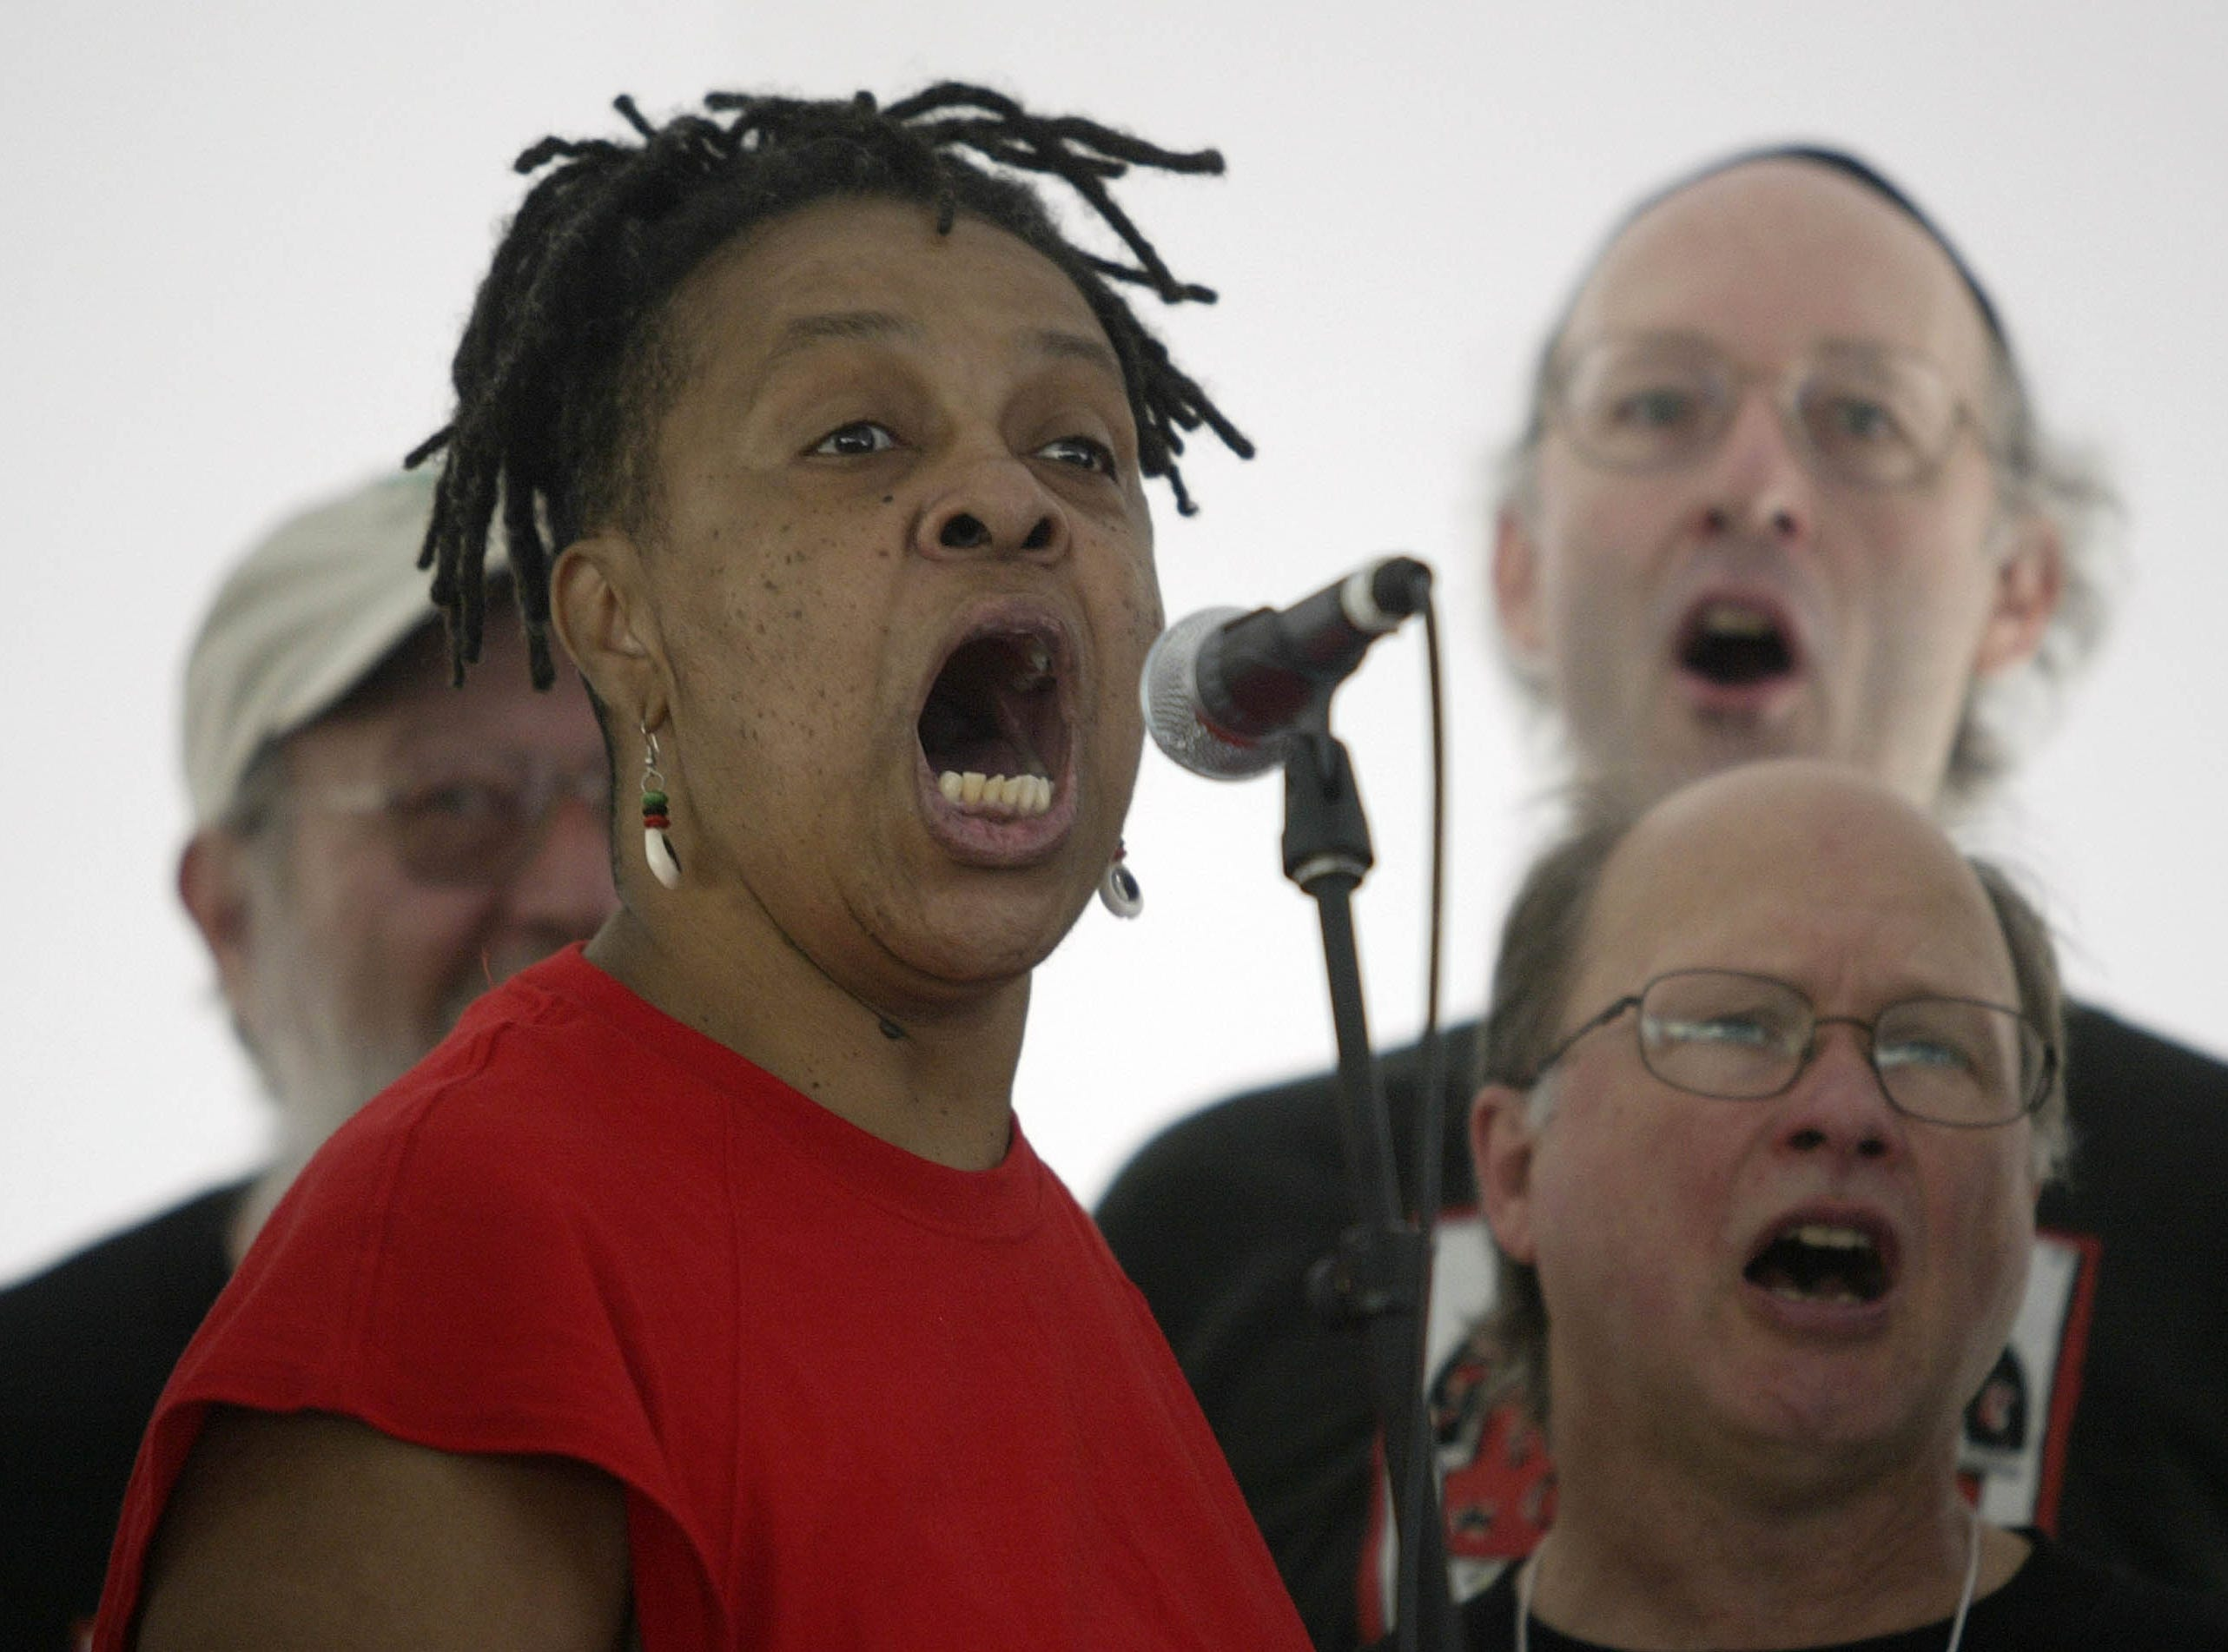 Paula Larke from Atmore, Ala.,  sings during a gathering to mark the 75th Anniversary of the Highlander Center Saturday, Sept. 1, 2007, in New Market, Tenn. The little school tucked away in the east Tennessee mountains may have faded from the public spotlight, but it was once at the center of the struggle for civil rights.